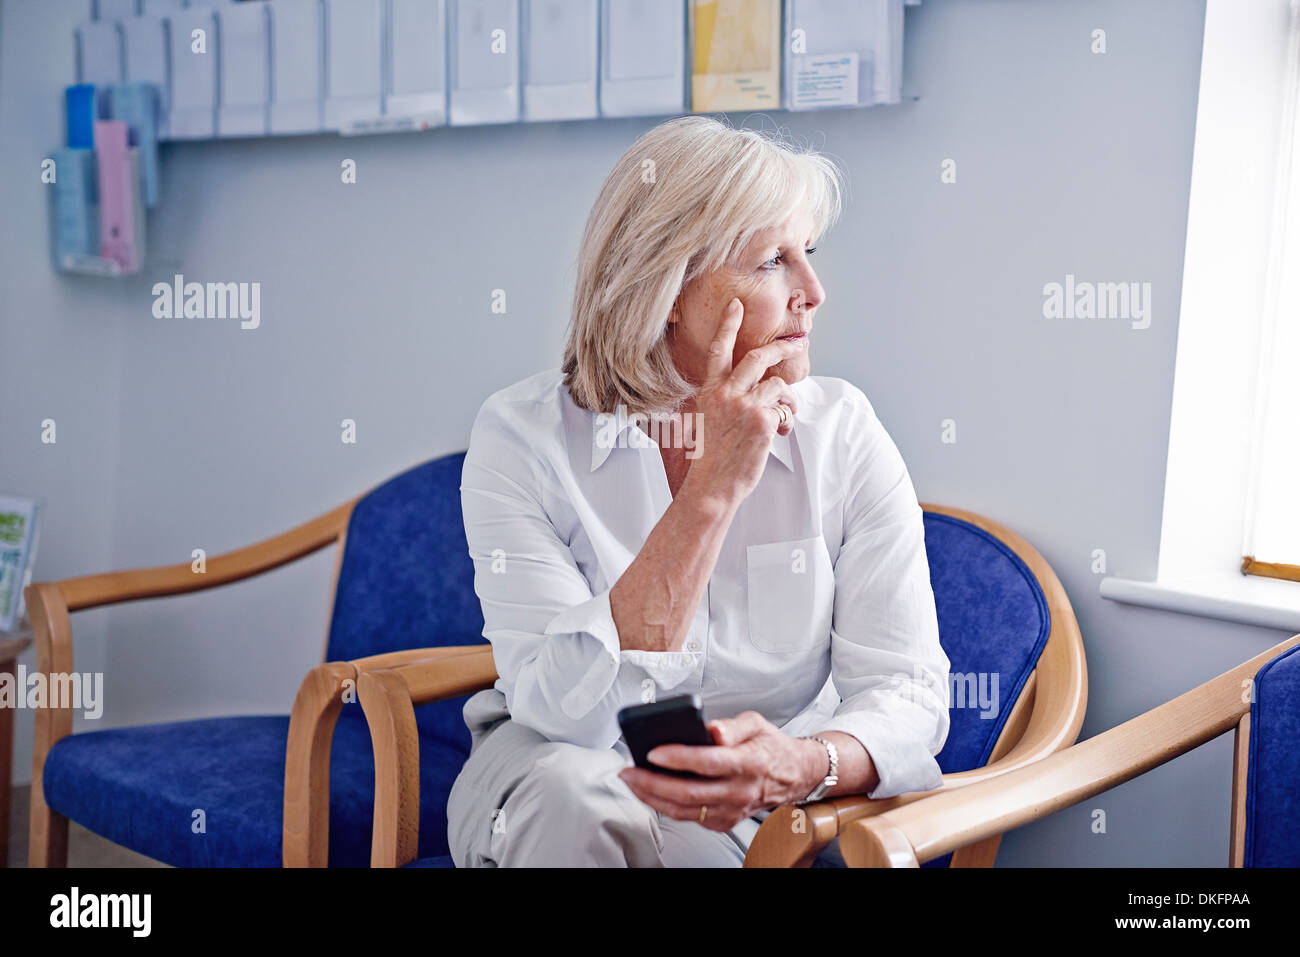 Mature female patient with mobile phone in hospital waiting room - Stock Image